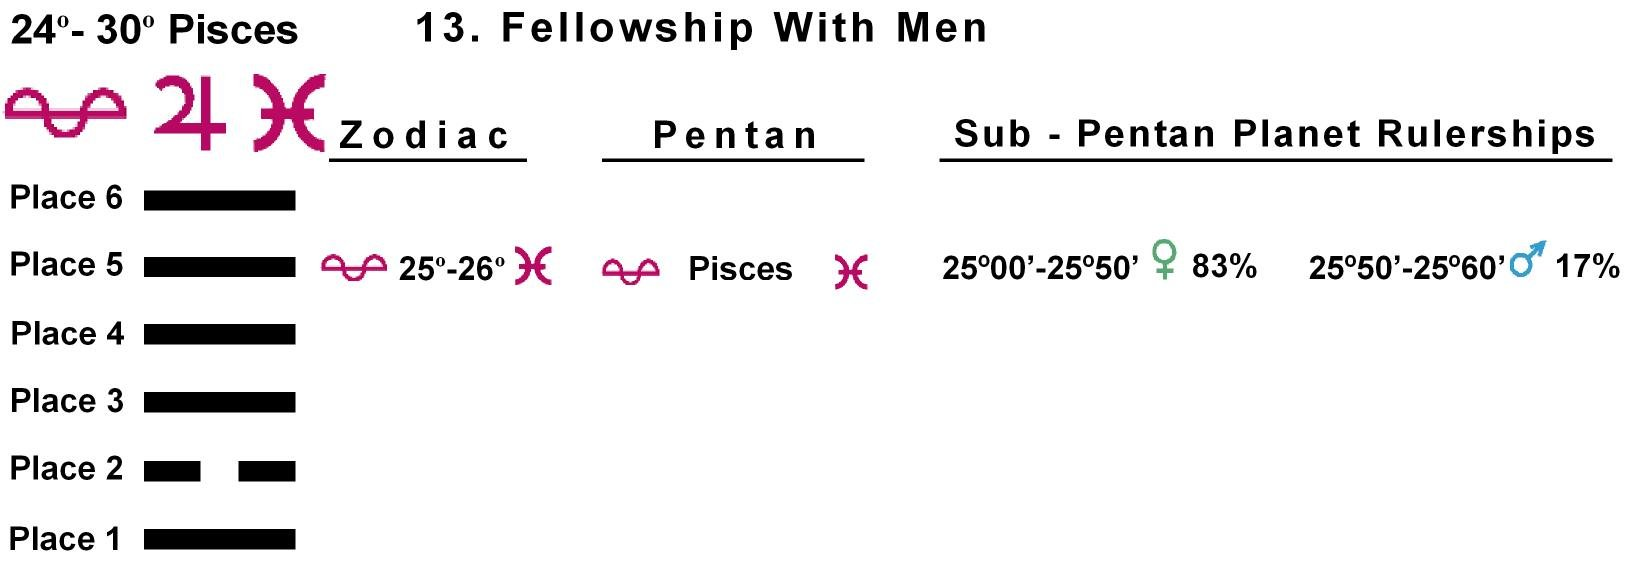 Pent-lines-12PI 25-26 Hx-13 Fellowship With Men